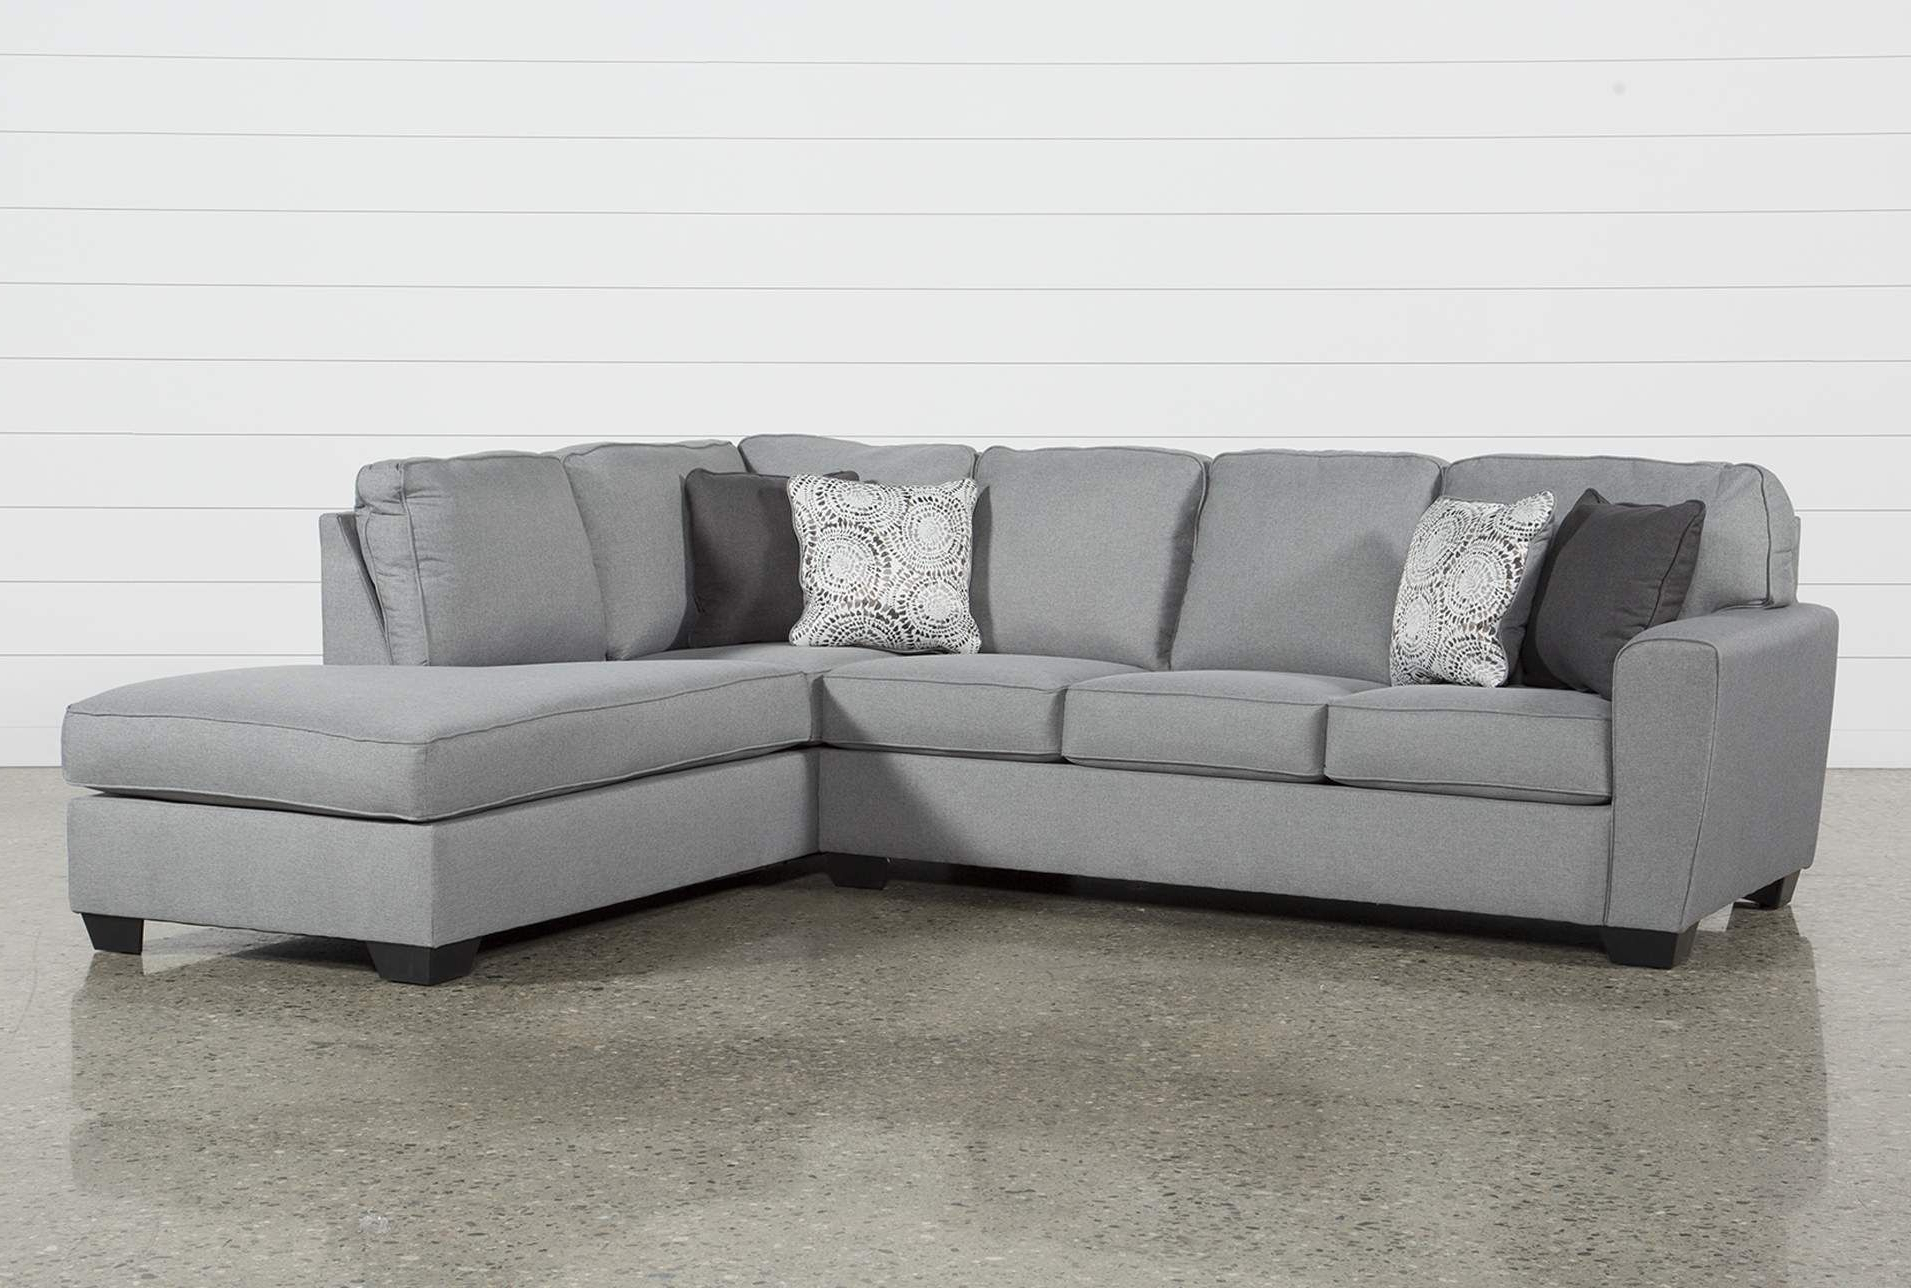 2019 Mcdade Ash 2 Piece Sectional W/raf Chaise (Gallery 3 of 20)